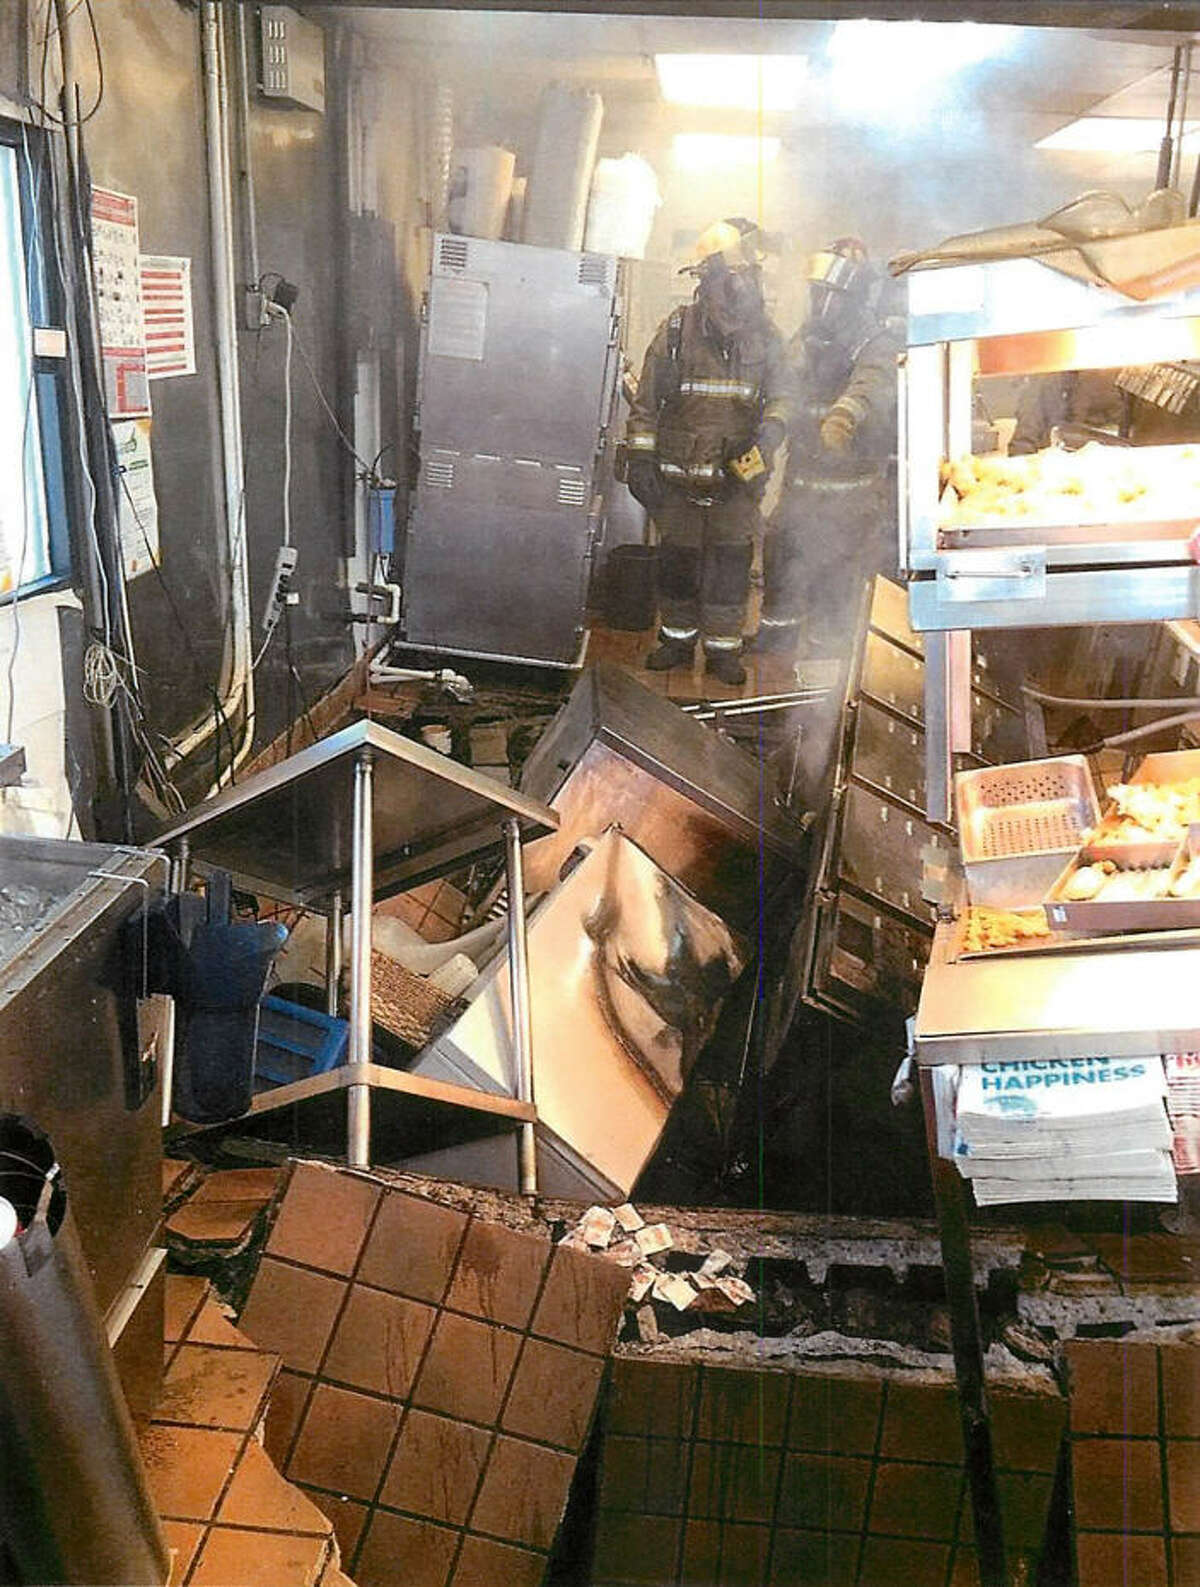 After a floor collapsed, gallons of hot oil poured down on kitchen workers at a Church's Fried Chicken in Livingston.